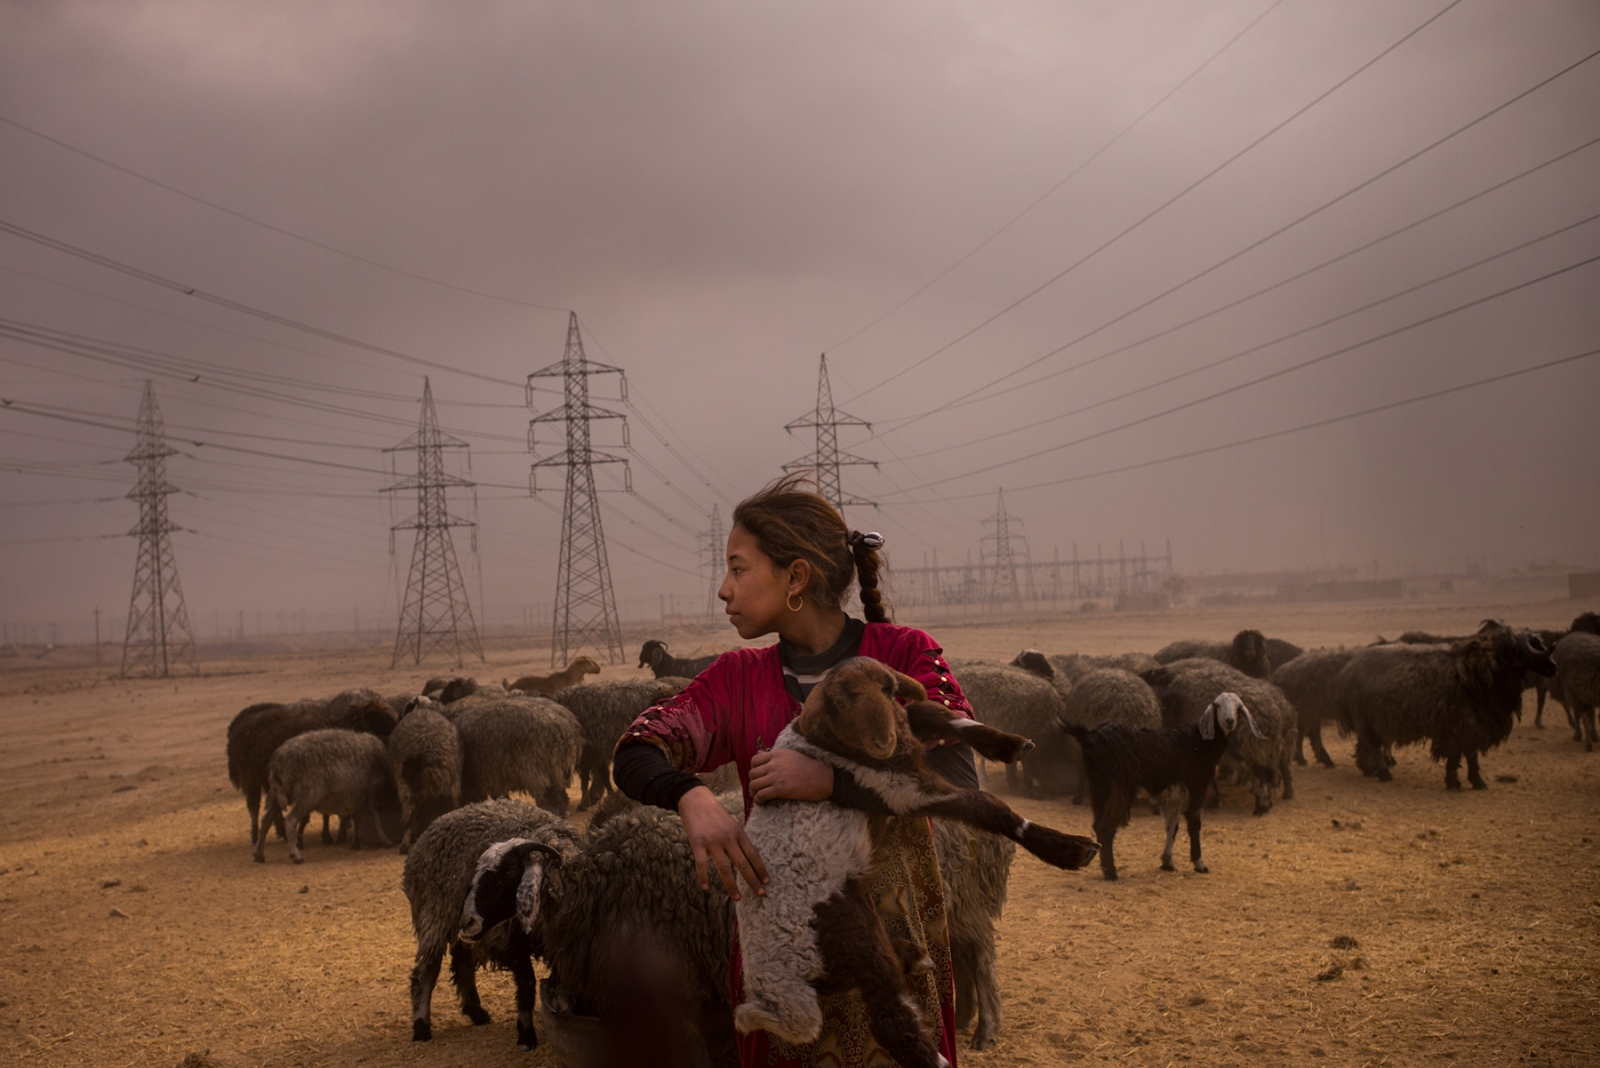 A girl herds a flock of sheep under a darkened sky in Qayyarah, Iraq, their fleece blackened by the smoke from oil fires that have been burning nearby since August. Oil wells were set on fire by retreating ISIS fighters over the summer before the start of the Mosul offensive last month. November 2016.